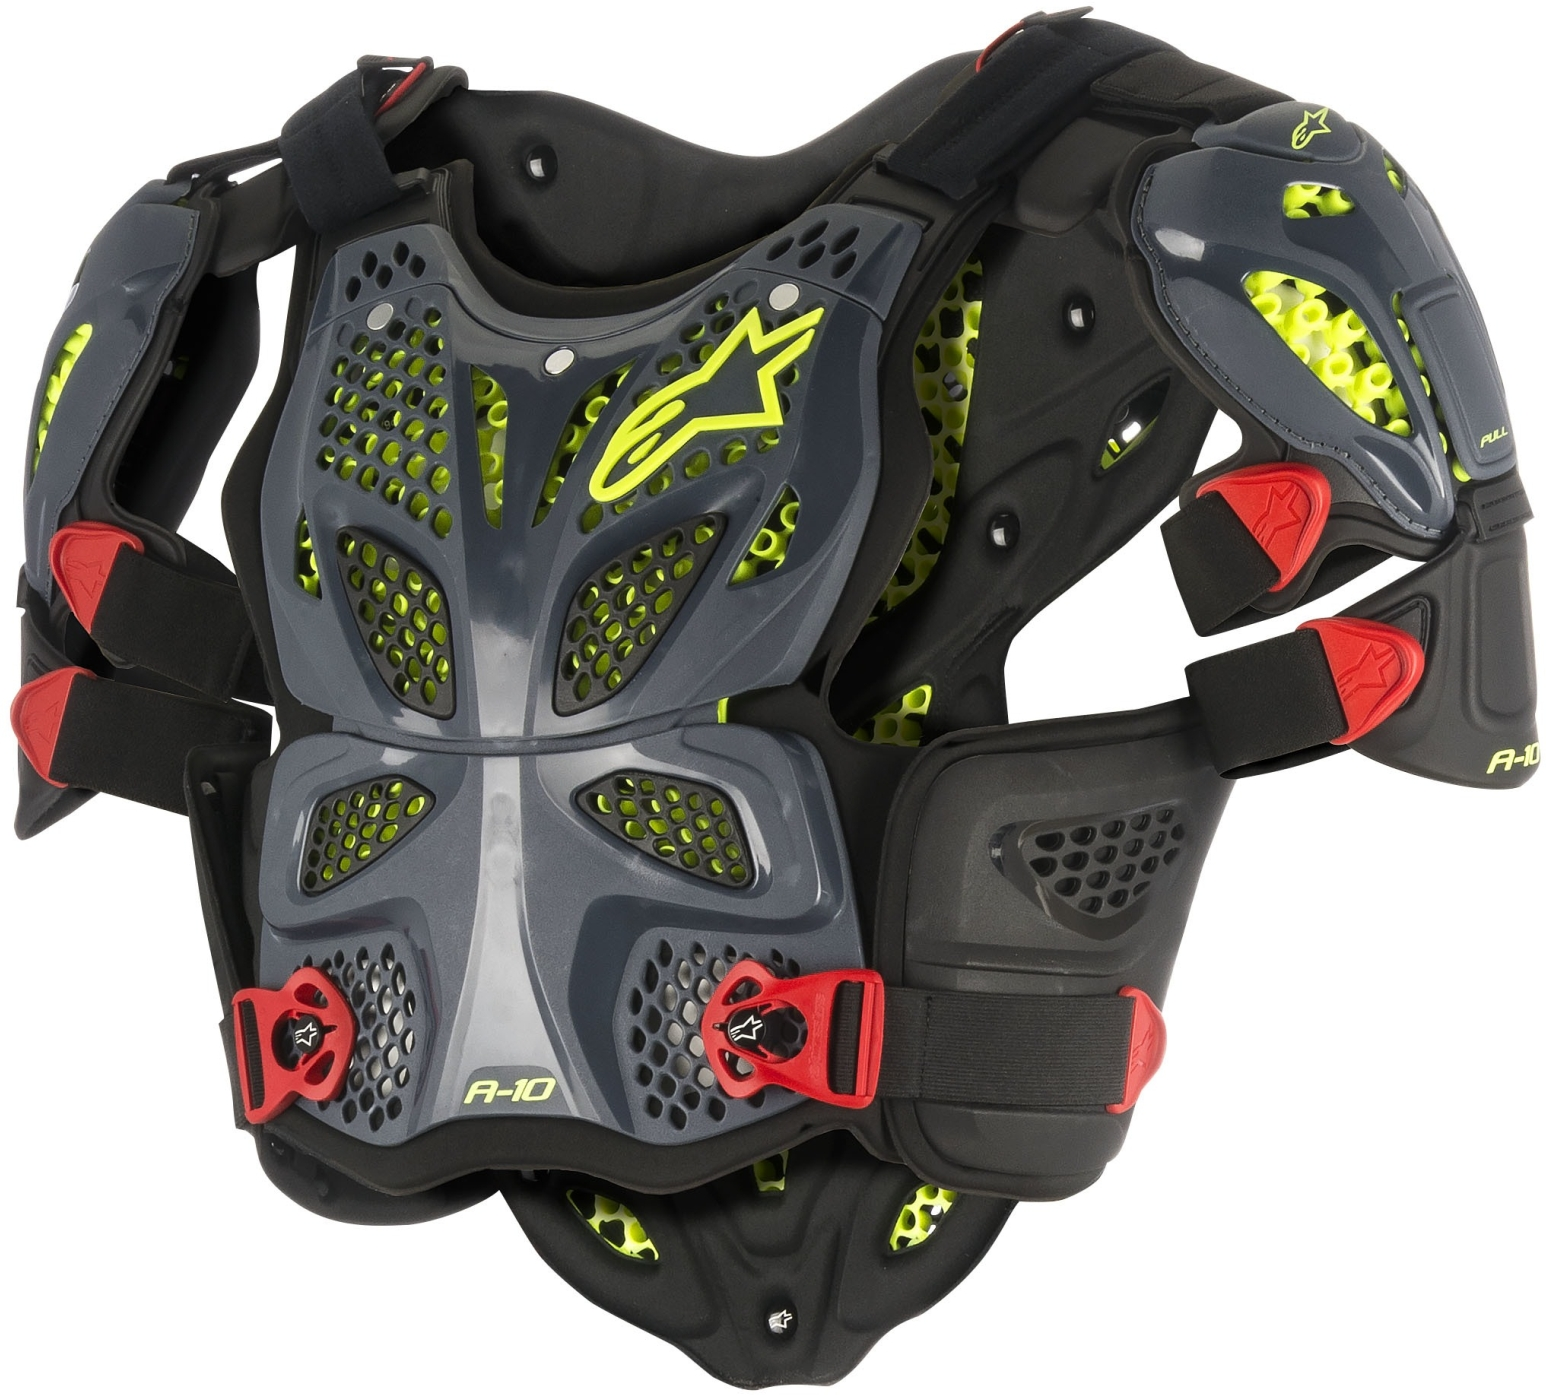 PETTORINA  A-10 FULL CHEST PROTECTOR